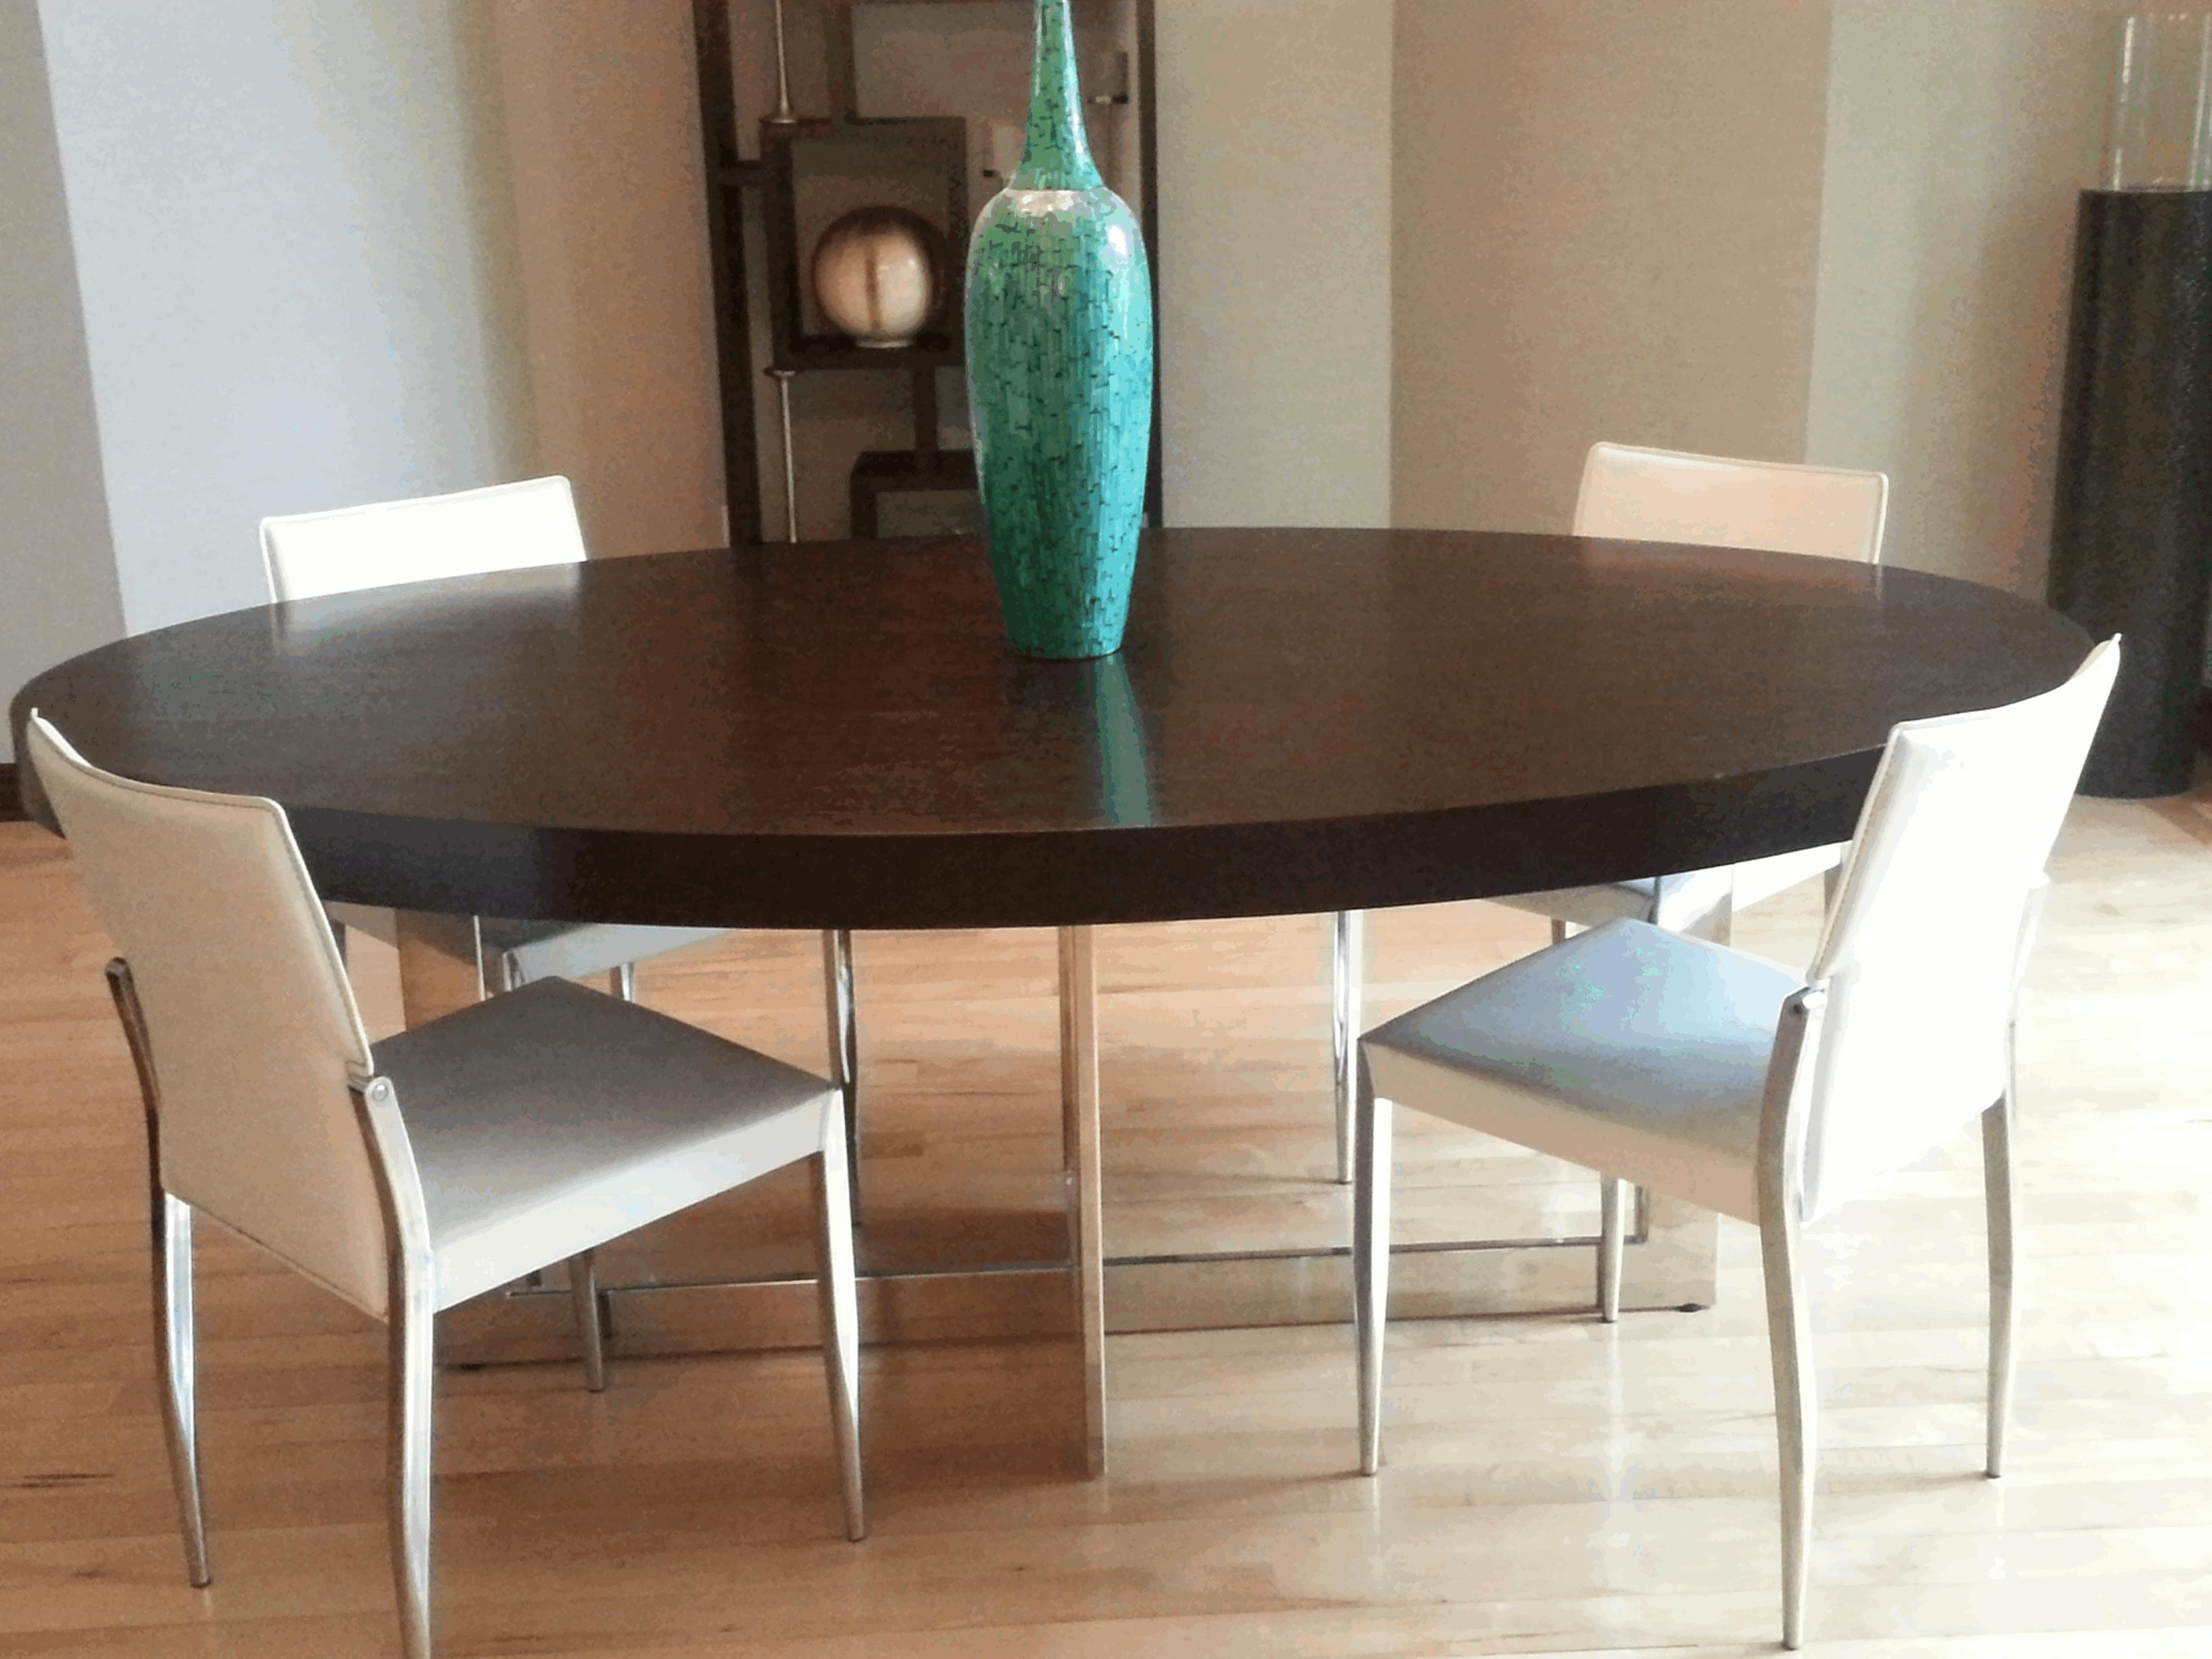 Contemporary Wood Dining Chairs Large Brown Varnished Wooden Display Intended For Best And Newest Batik Coffee Tables (View 9 of 20)